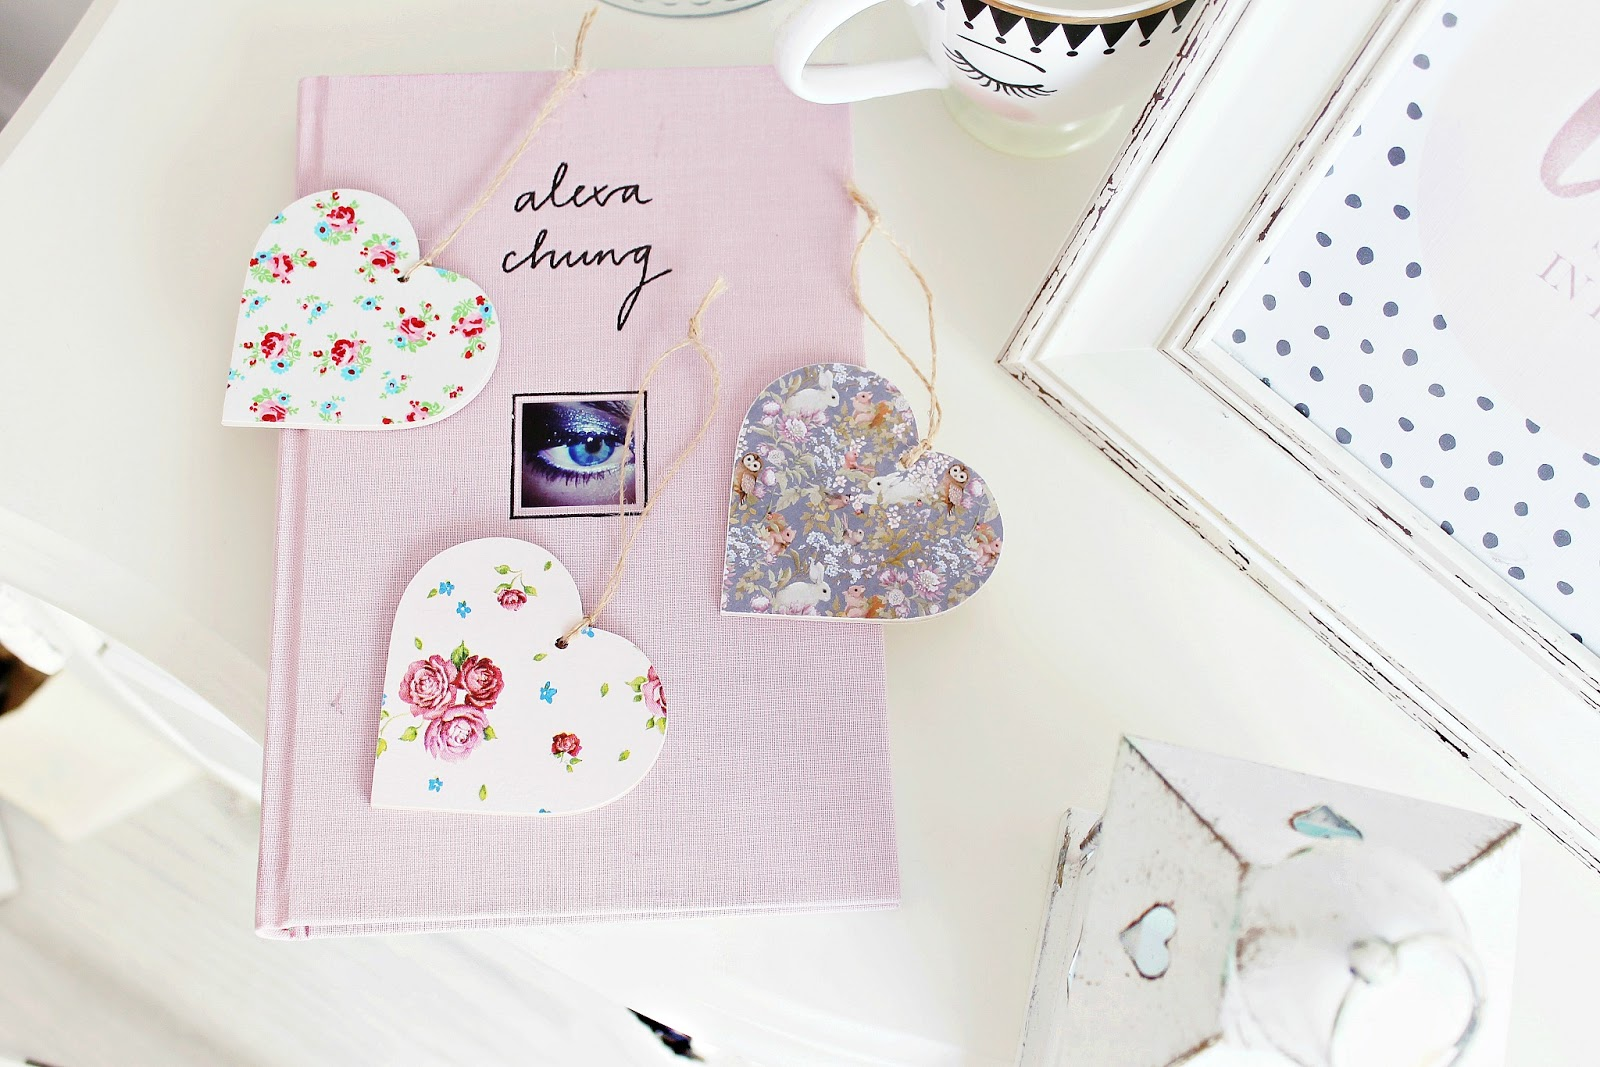 Spring girly desk or bedside table ideas for a girly shabby chic bedroom, how to makeover your room for spring